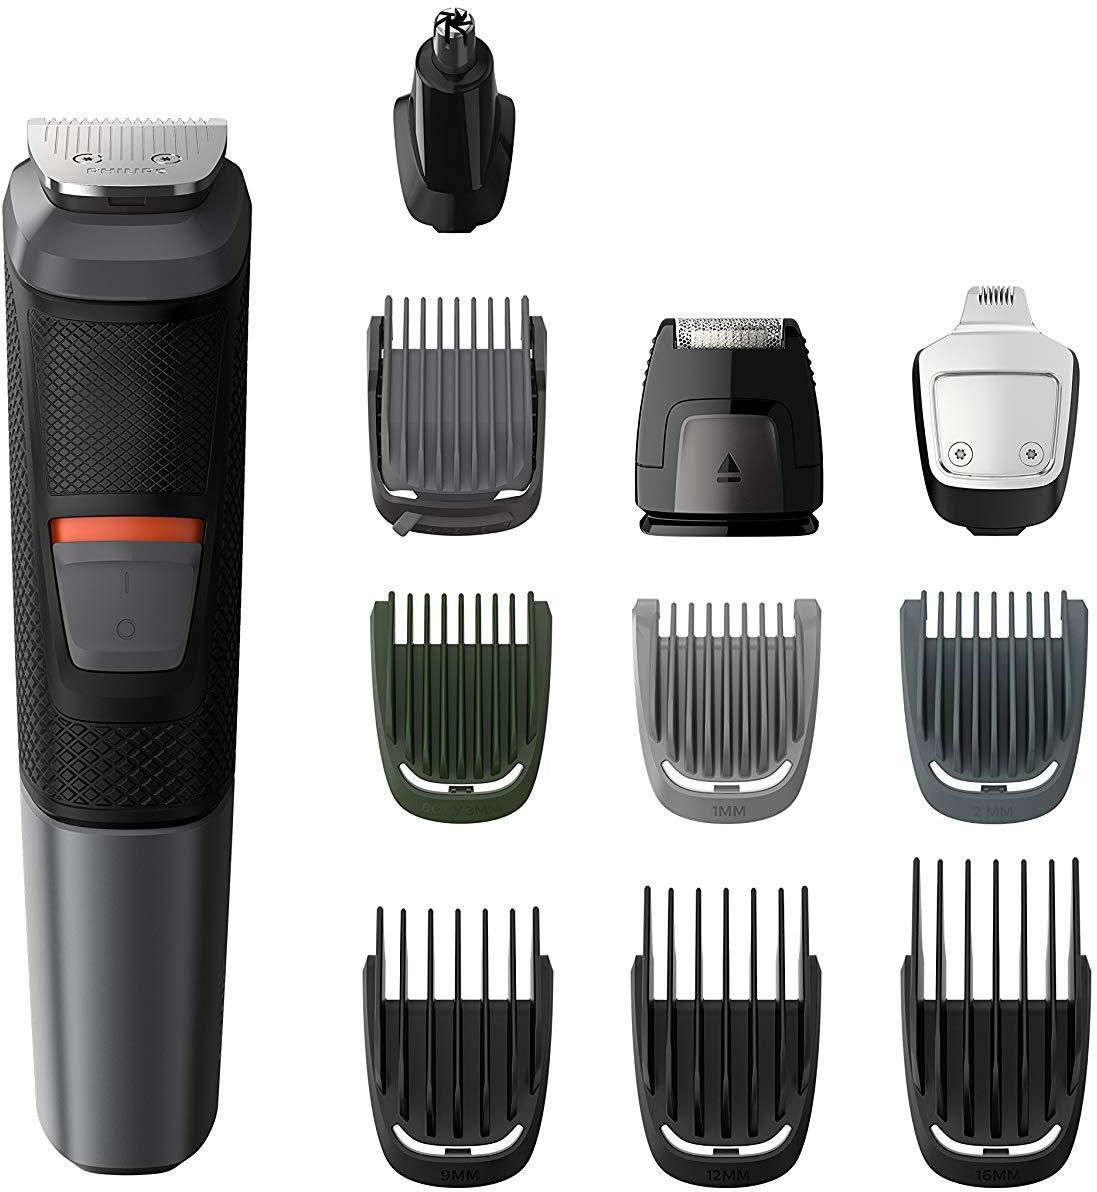 Philips MG5730/33 Series 5000 11 in 1 (Face, Beard & Body) Grooming